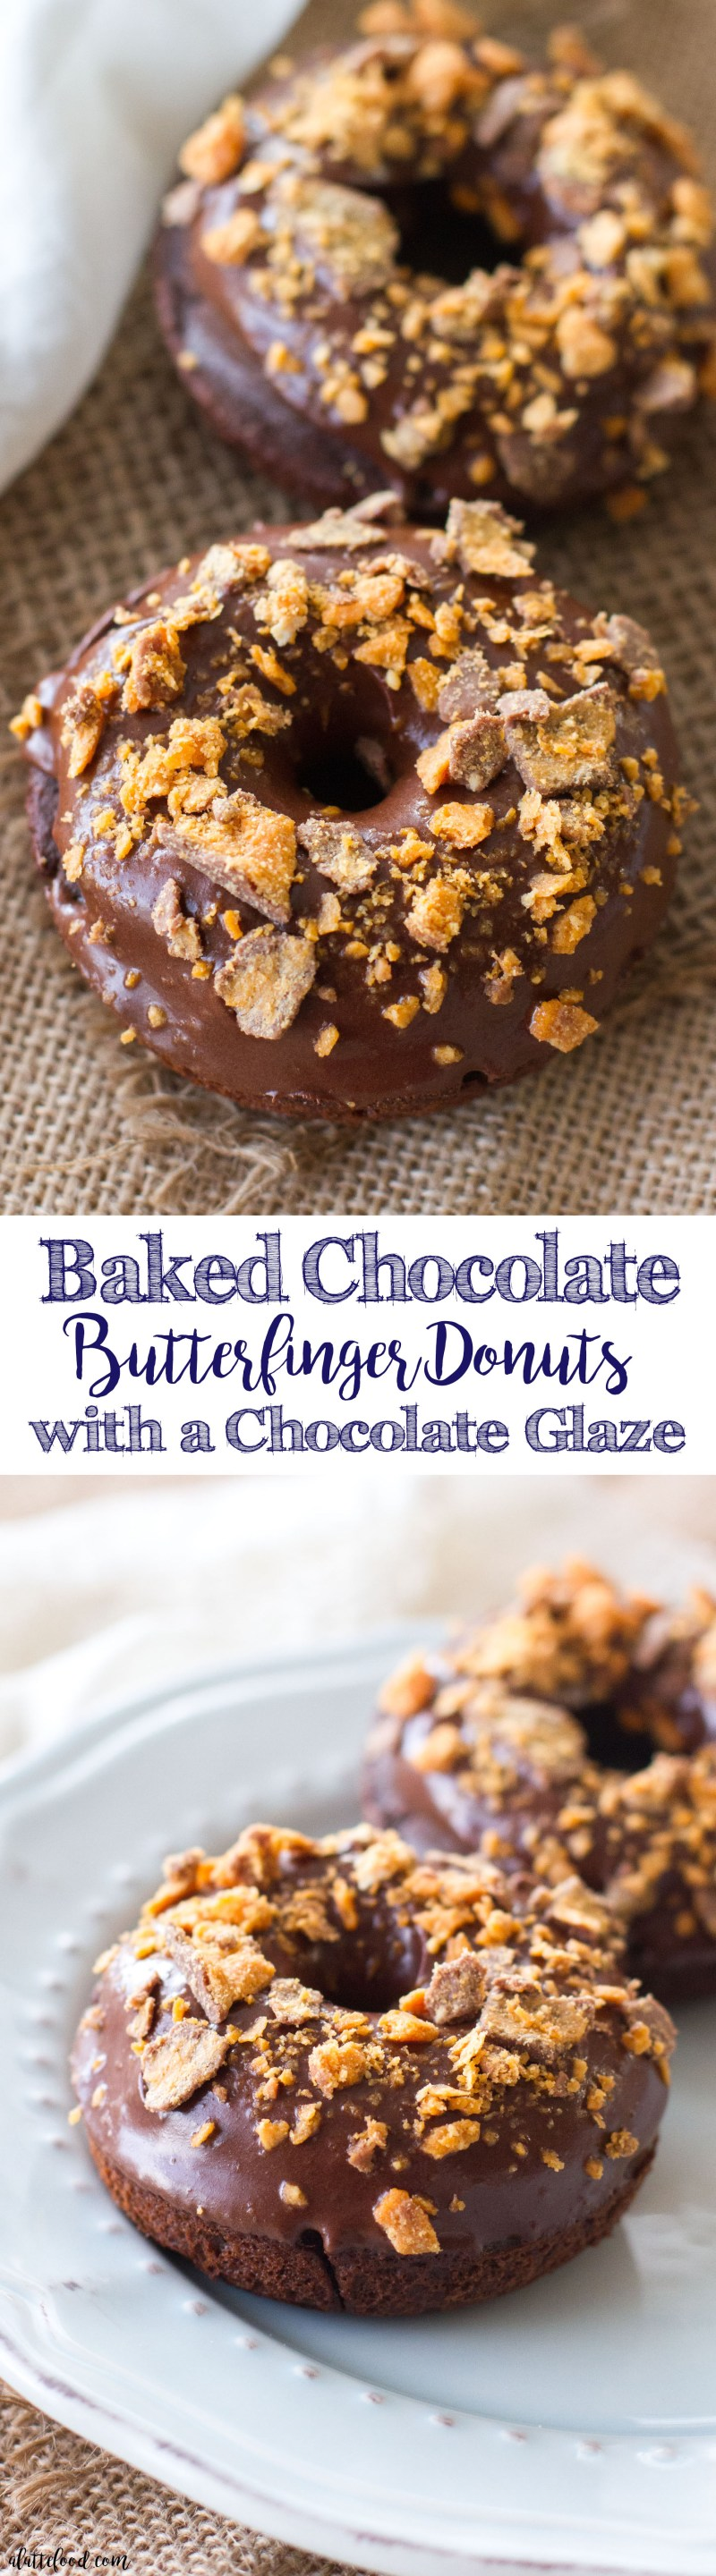 These simple baked chocolate donuts are topped with a rich chocolate glaze and crumbled butterfingers! These chocolate donuts are rich, sweet, and perfectly decadent! Technically, since this is a donuts, it can be considered breakfast food, right? 😉 I promise I won't tell!